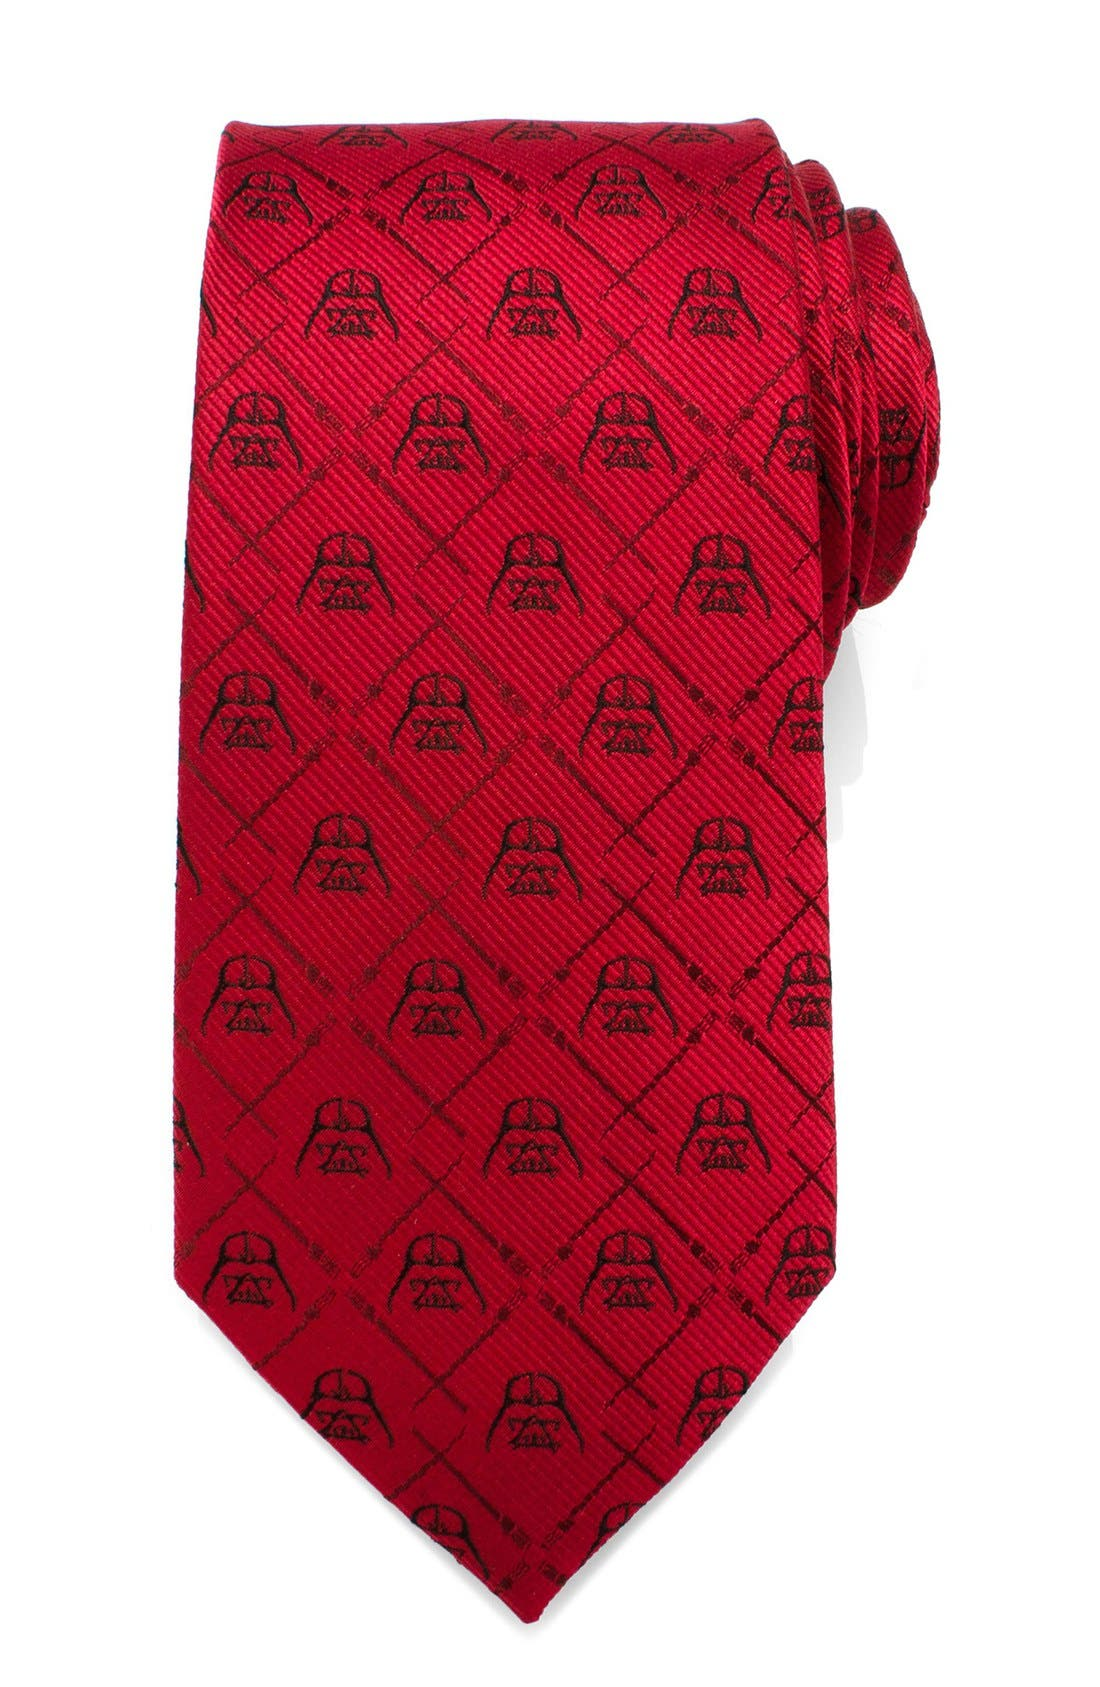 'Darth Vader' Silk Tie,                         Main,                         color, 600